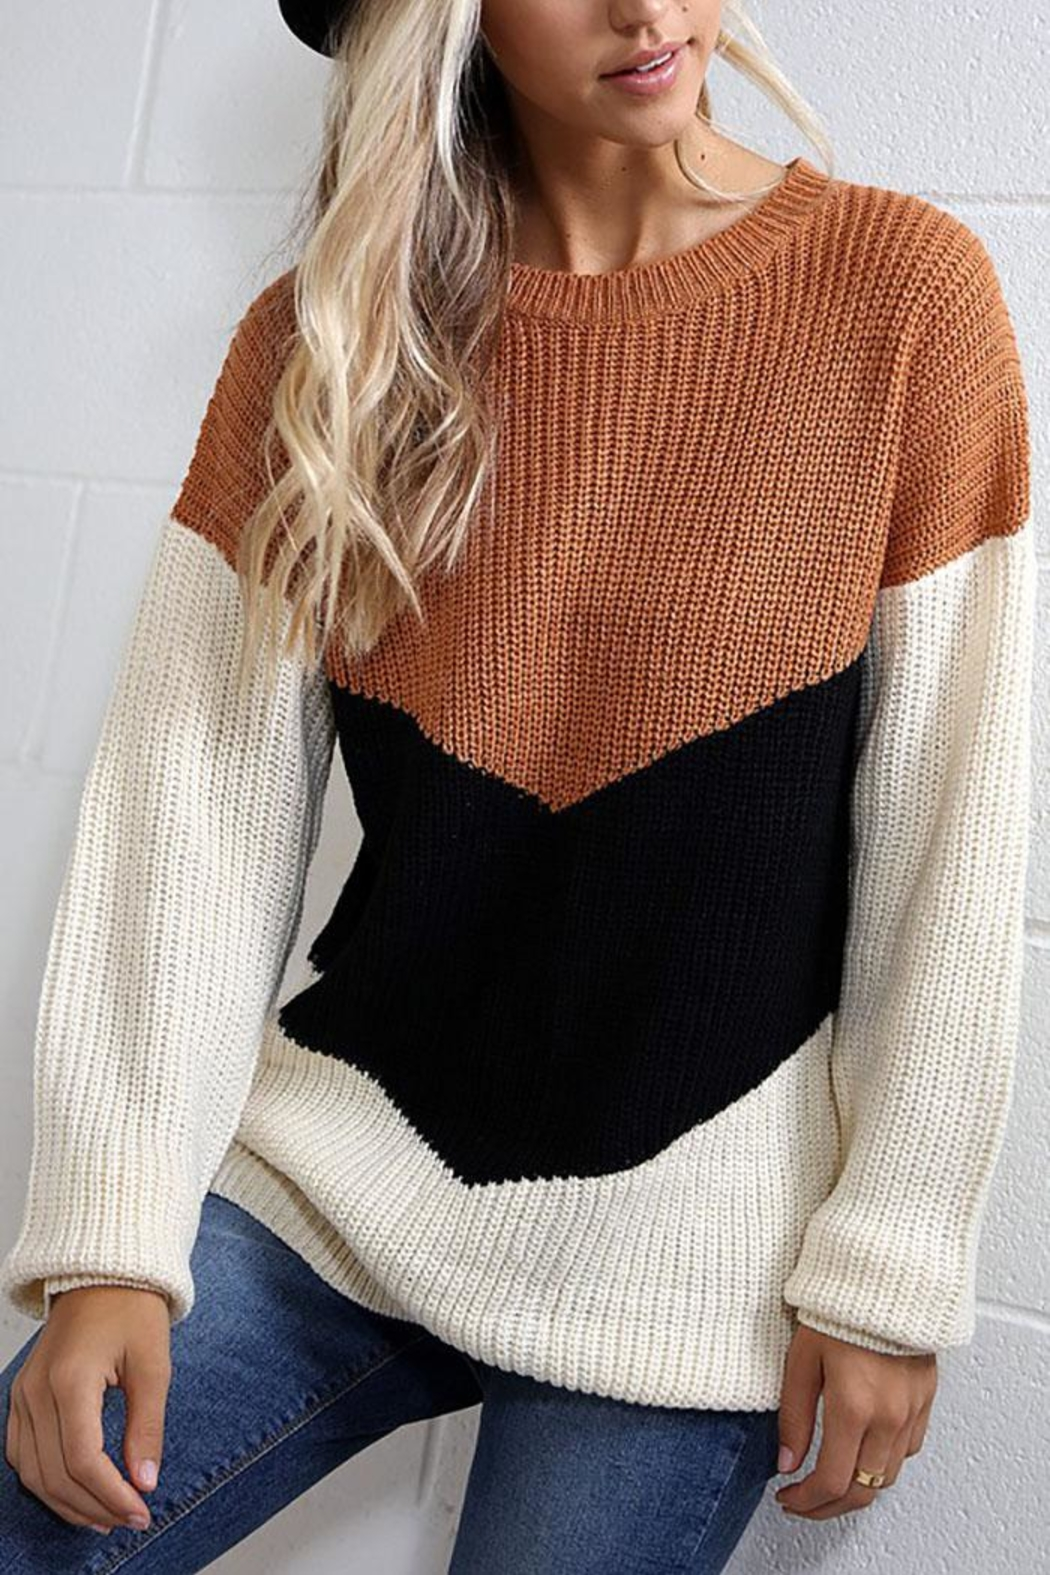 Wanna B Chevron Colorblock Knit Pullover Sweater Top - Main Image